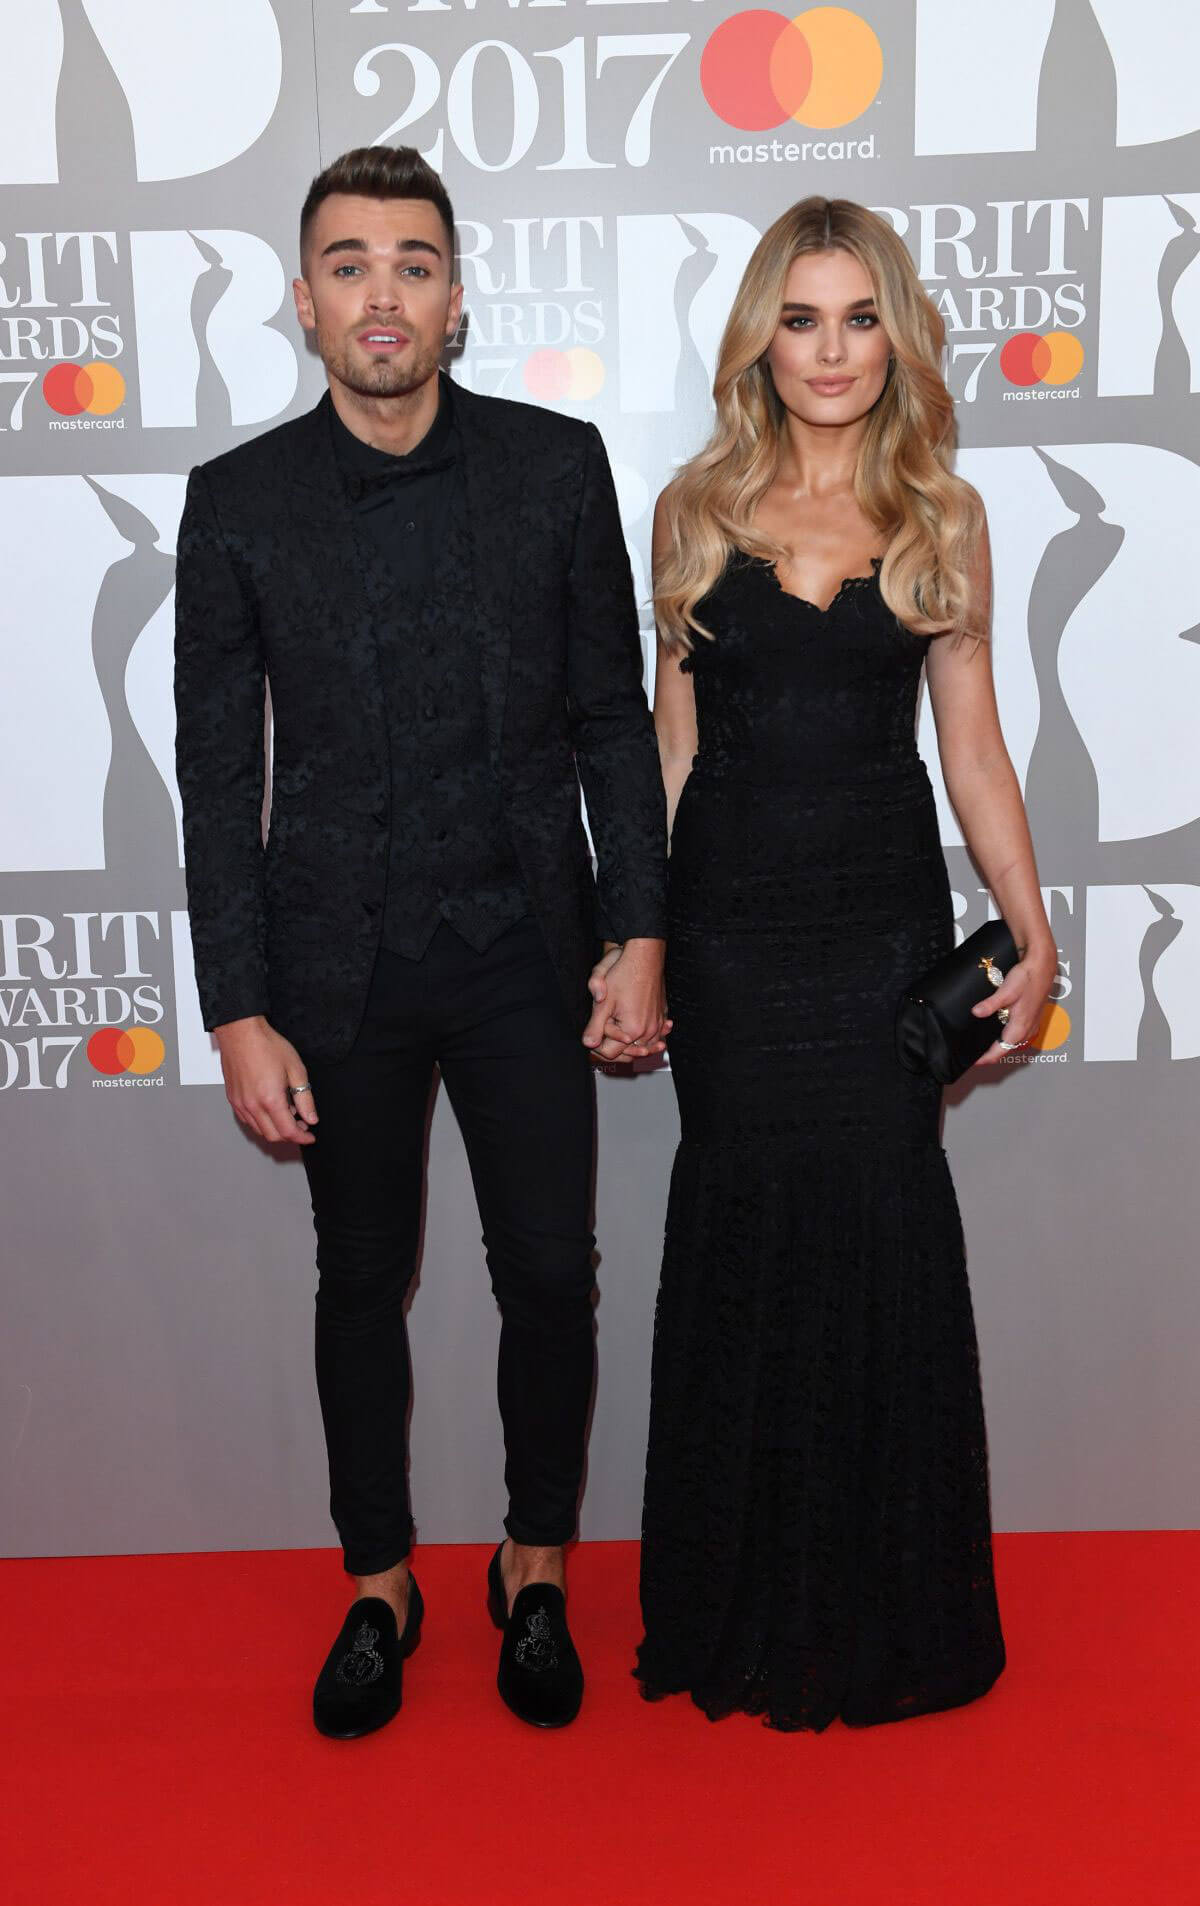 Chloe Lloyd Stills at Brit Awards 2017 in London